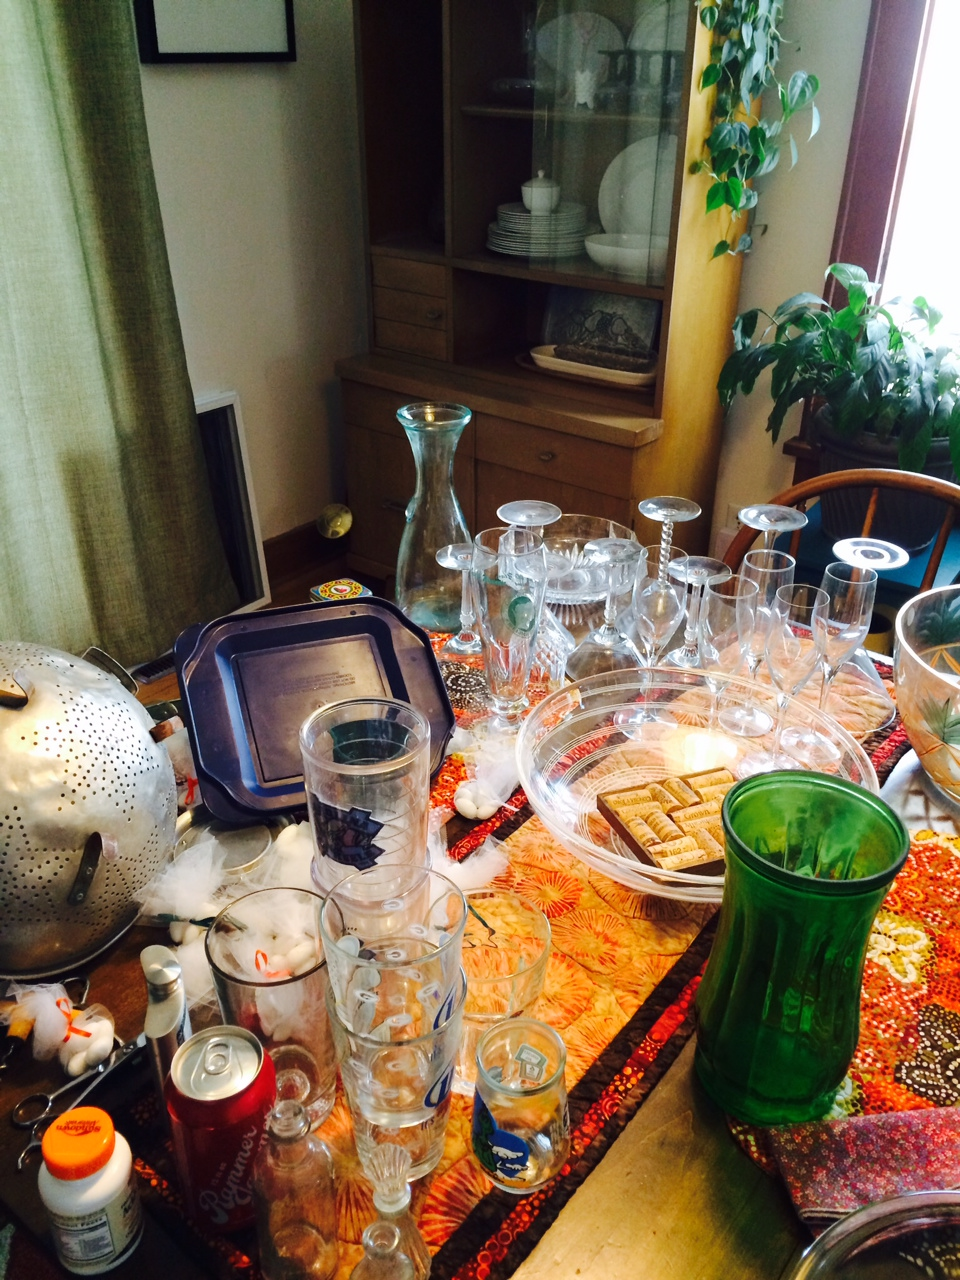 We have too much stuff! Here, our kitchen table is covered in clutter.